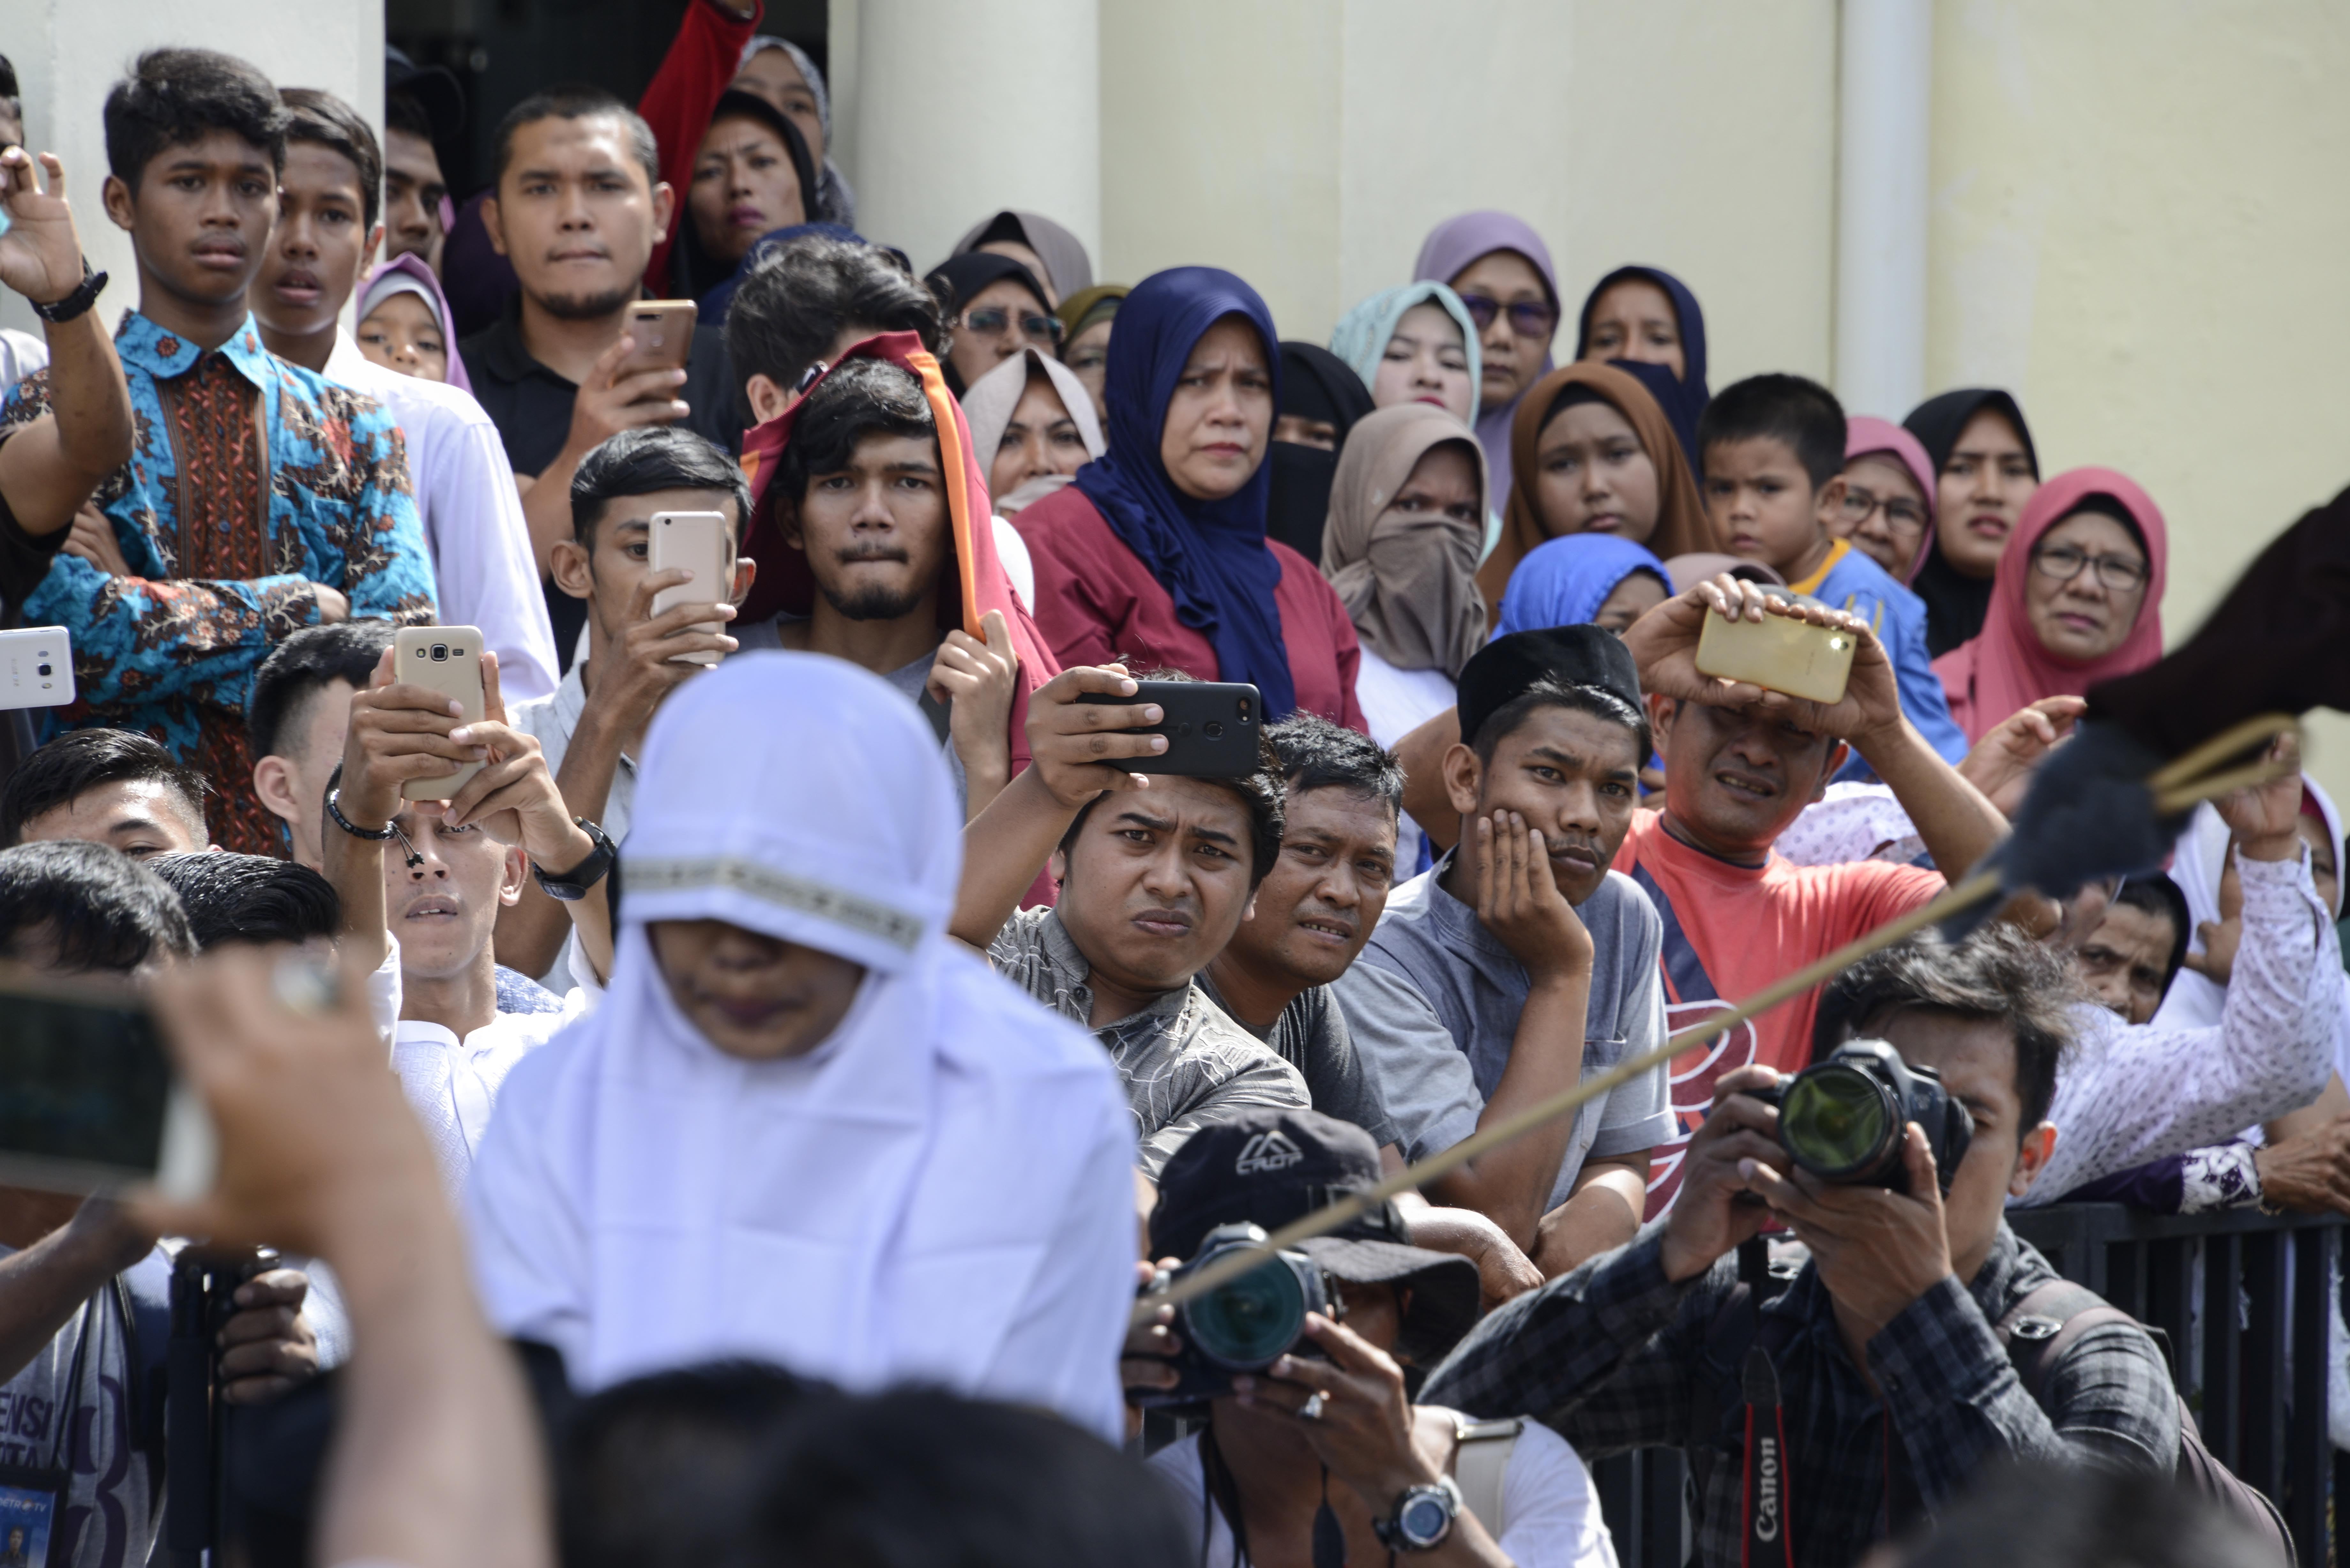 Onlookers watch as a member of Indonesia's Sharia police, at right outside the frame, whips a non-Muslim woman, bottom left, for trading alcohol during a public caning ceremony outside a mosque in Banda Aceh, the capital of Aceh province, July 13, 20...